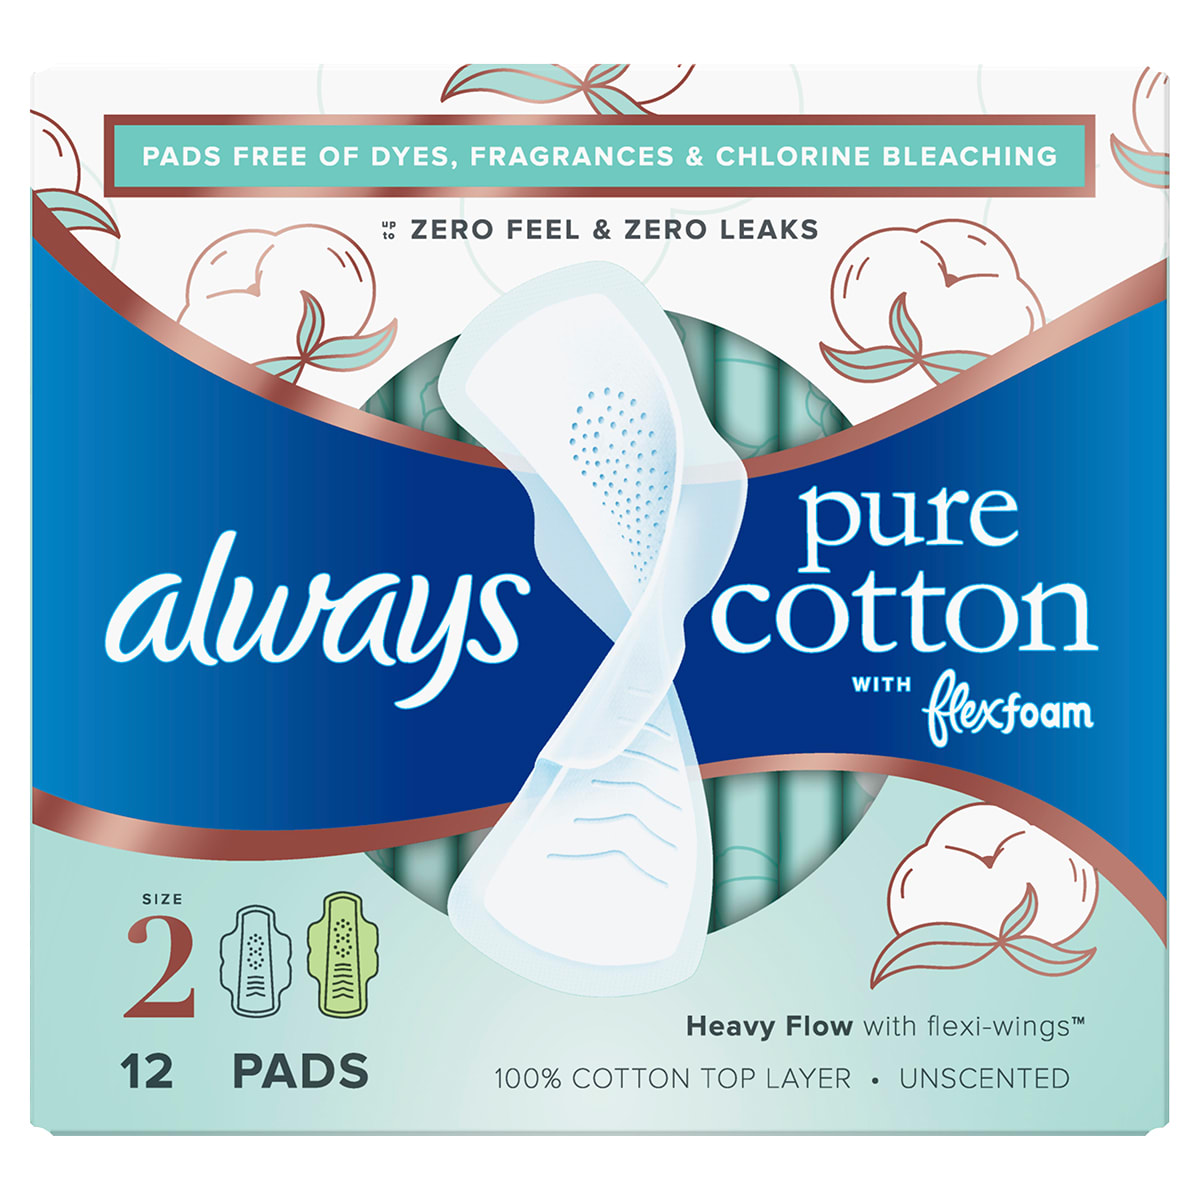 Always Pure Cotton Size 2 Pads 12ct